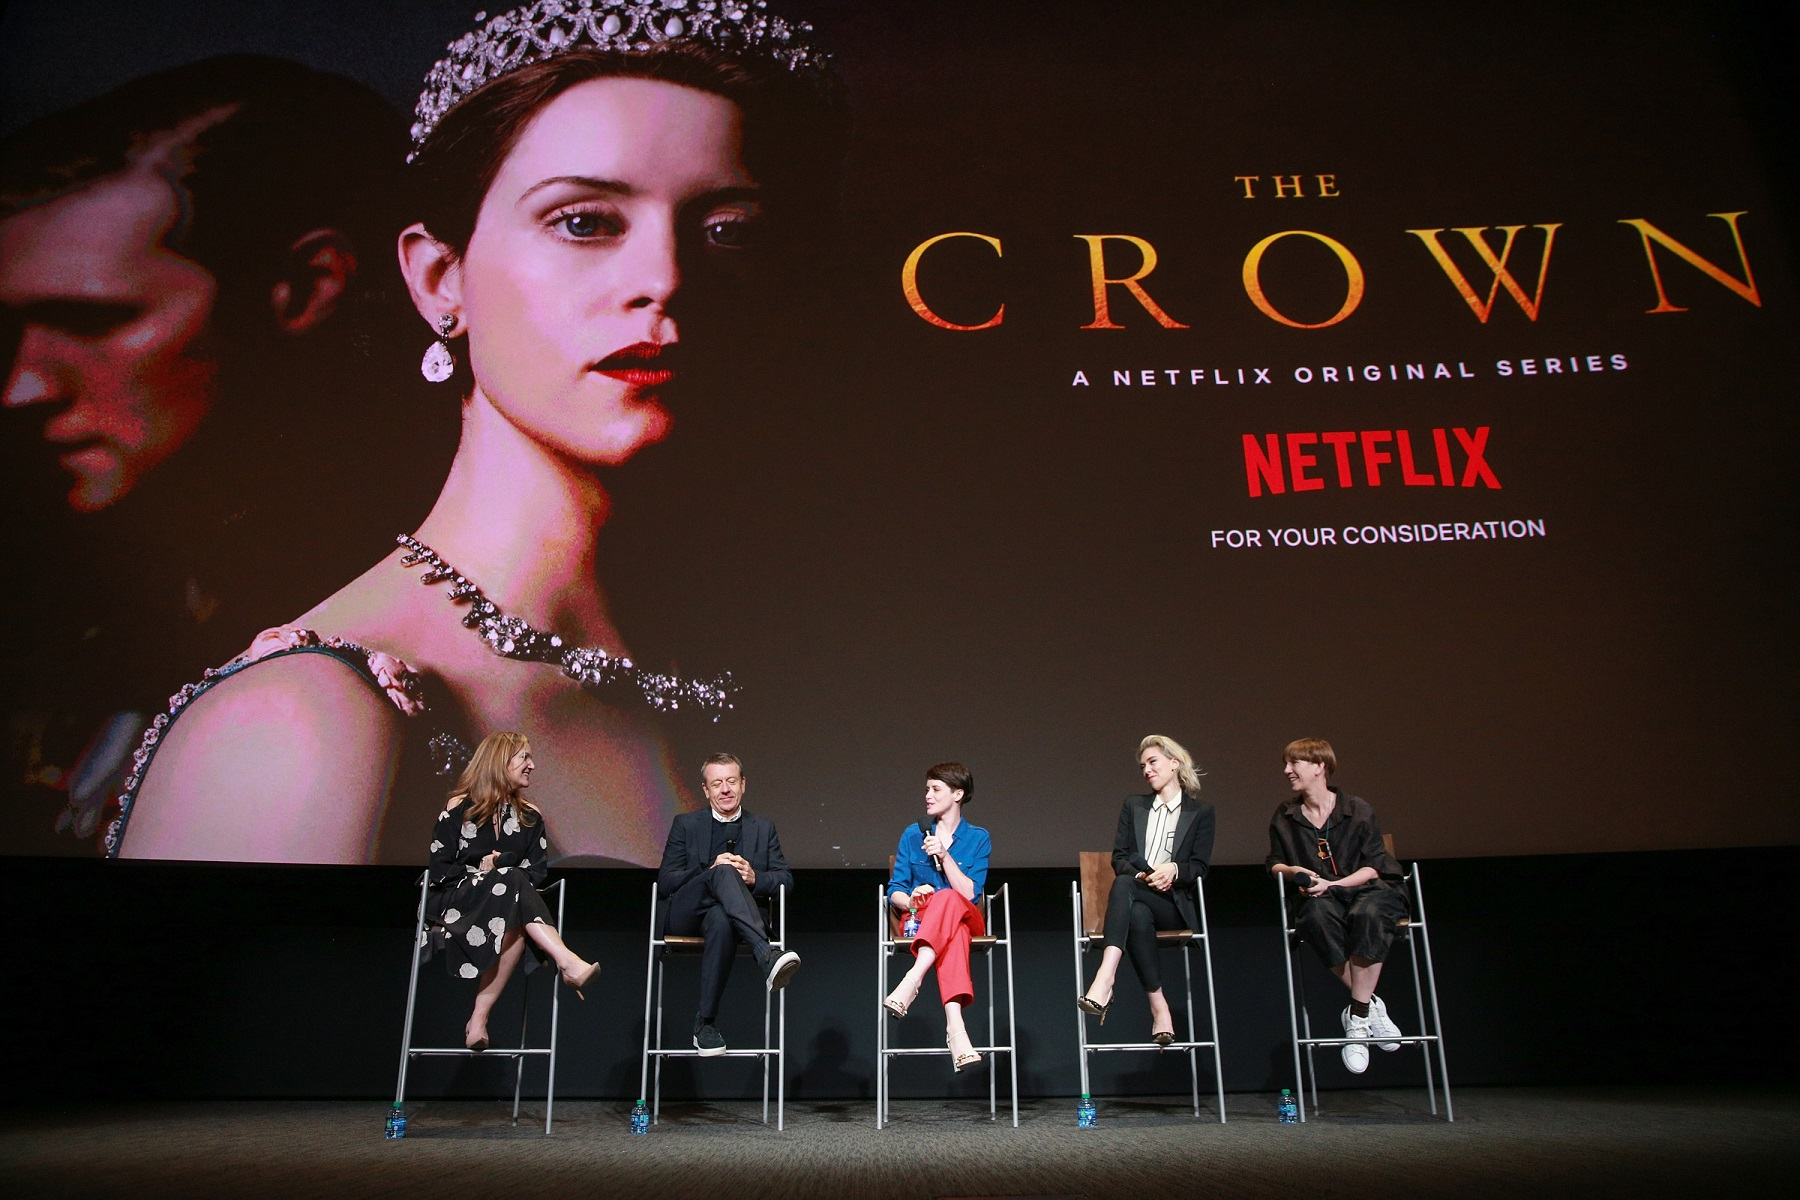 NORTH HOLLYWOOD, CA - APRIL 27:  (L-R) Krista Smith, Peter Morgan, Claire Foy, Vanessa Kirby and Jane Petrie speak onstage during the For Your Consideration event for Netflix's